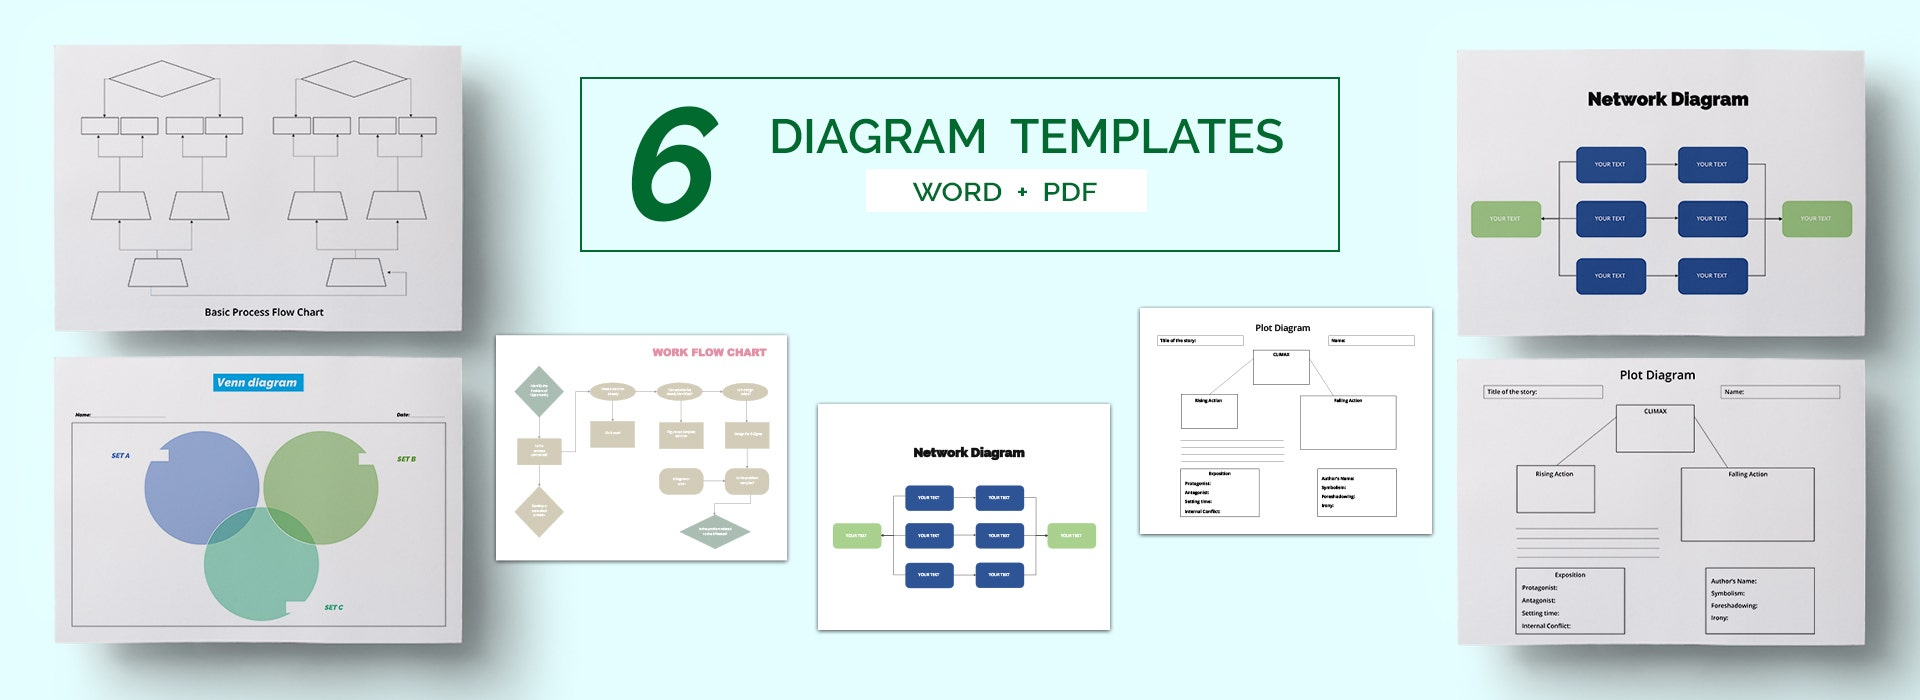 diagrambundle